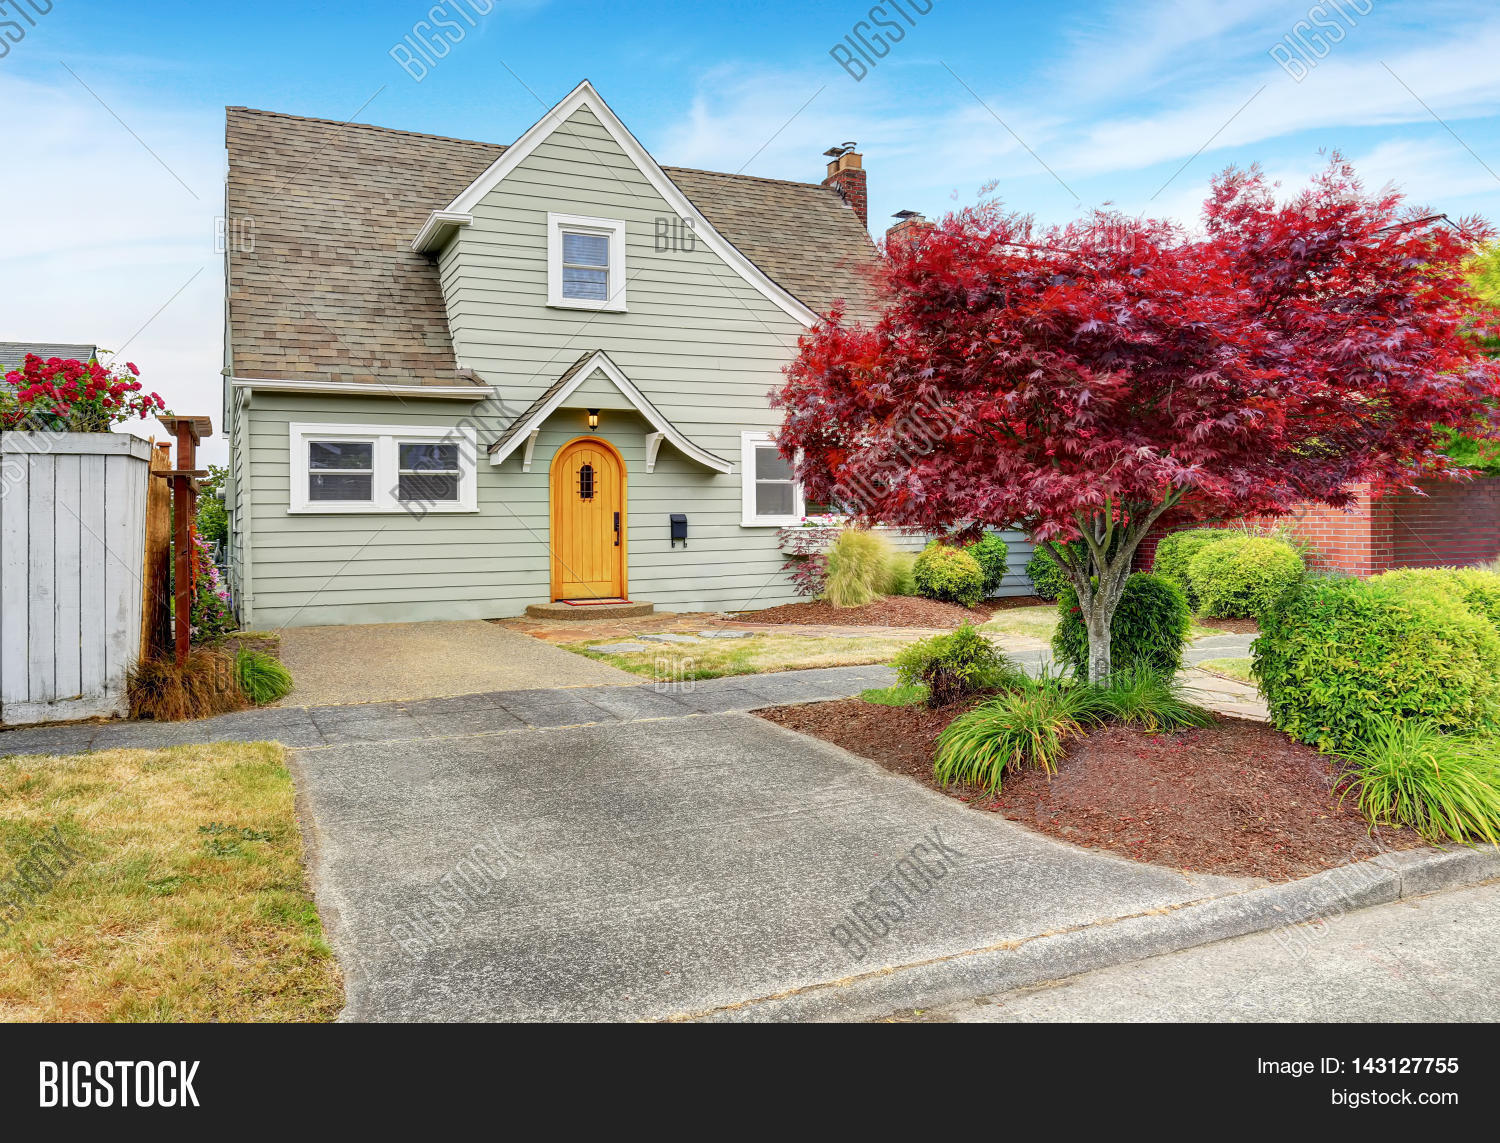 Classic american house exterior image photo bigstock for Classic american house